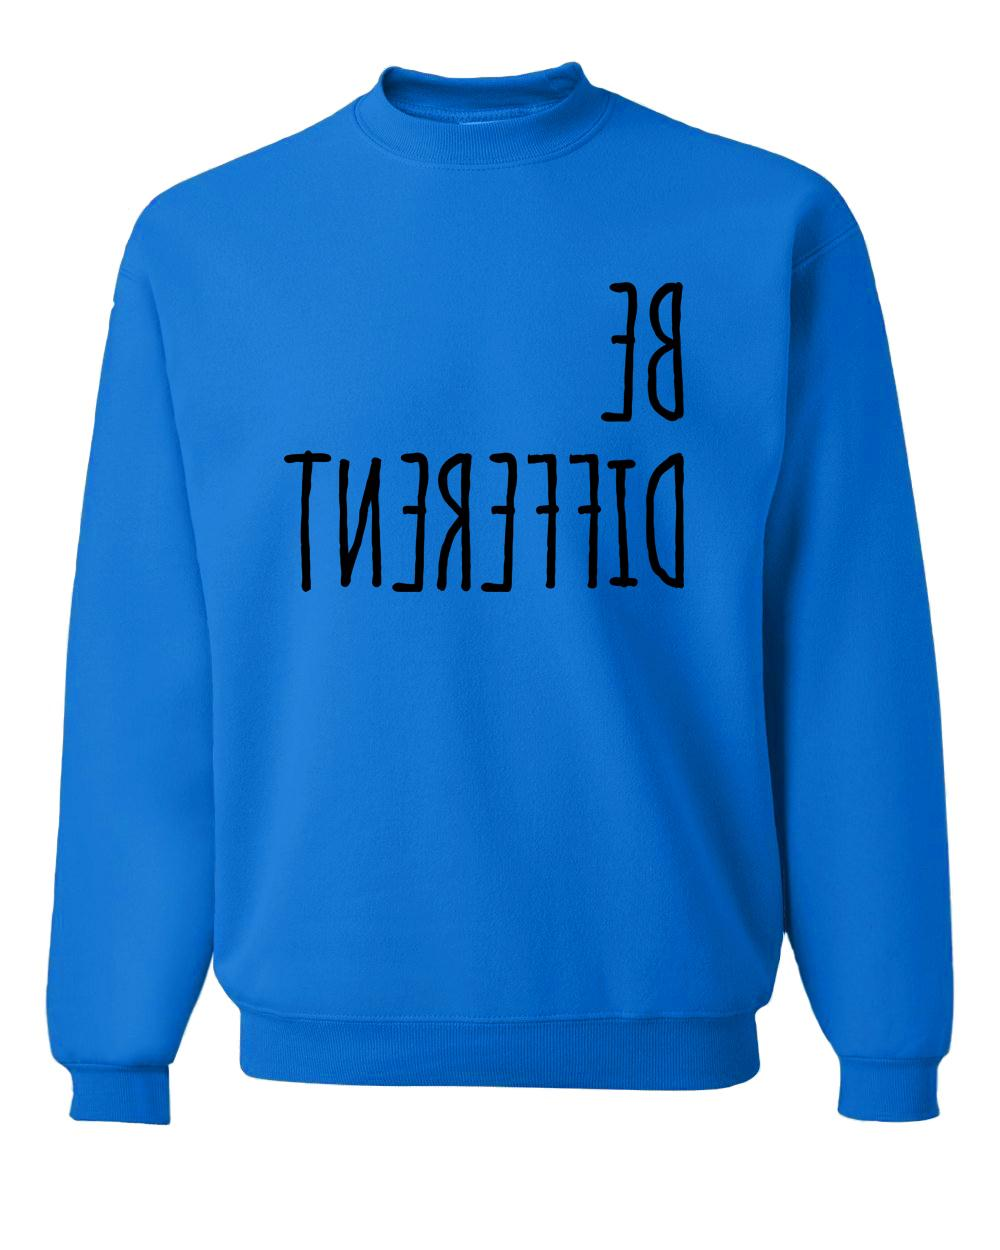 HTB1a2WsPVXXXXXCXpXXq6xXFXXXj - Be Different novelty hoodies men 2019 new style spring winter fashion men sweatshirt hip hop style streetwear brand tracksuit